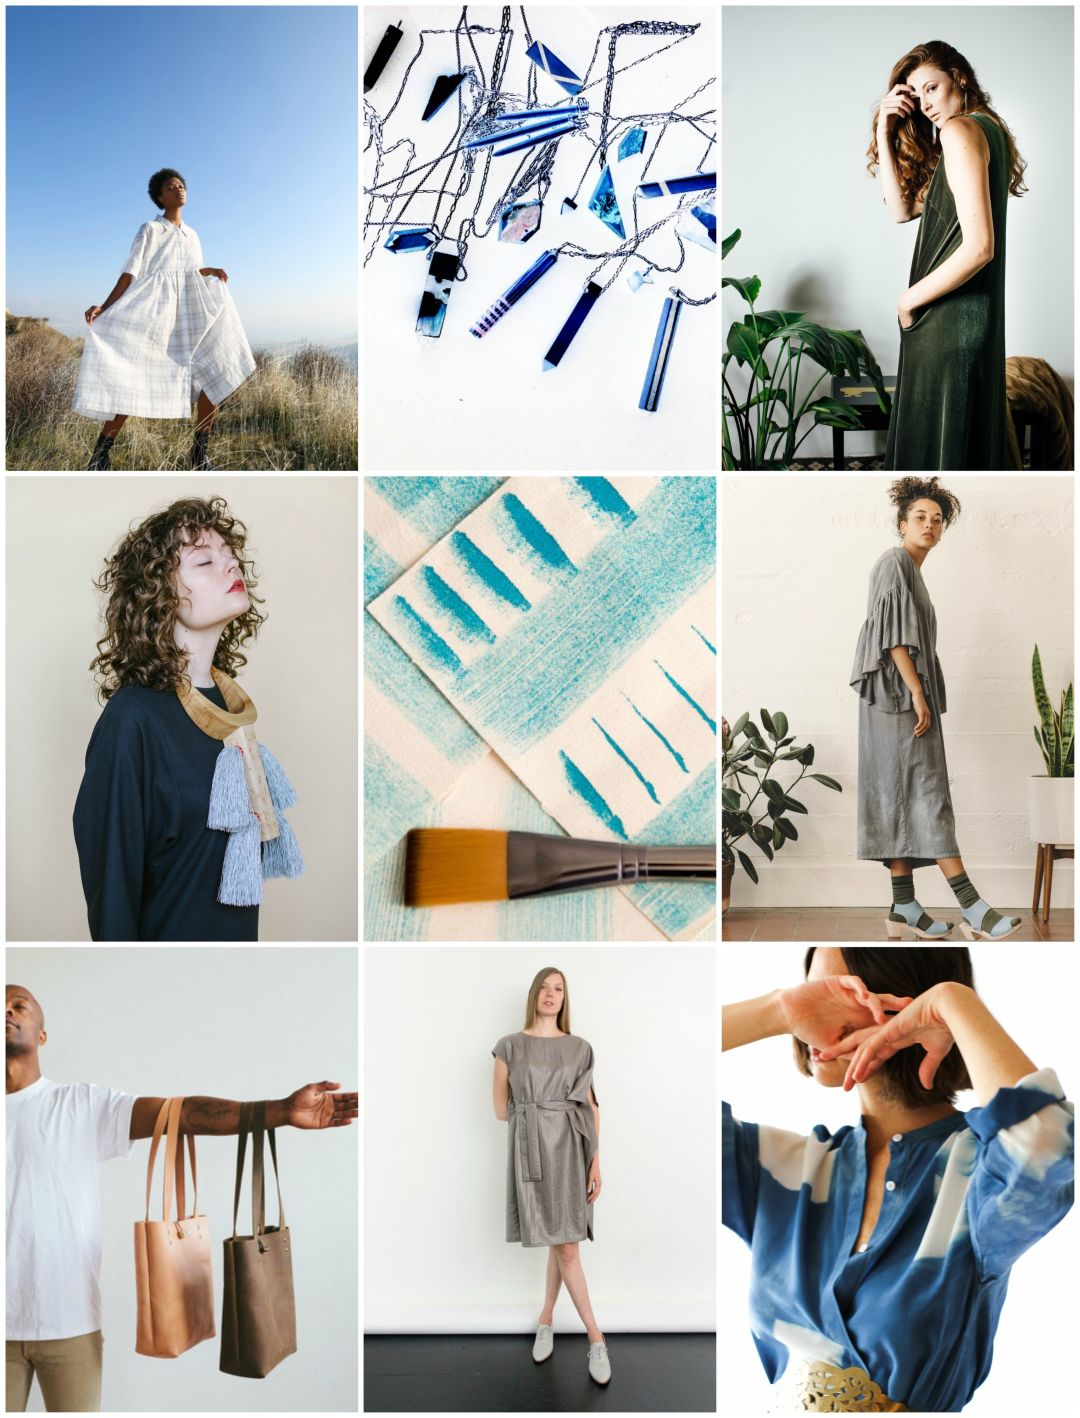 Design week collage3 knps7p